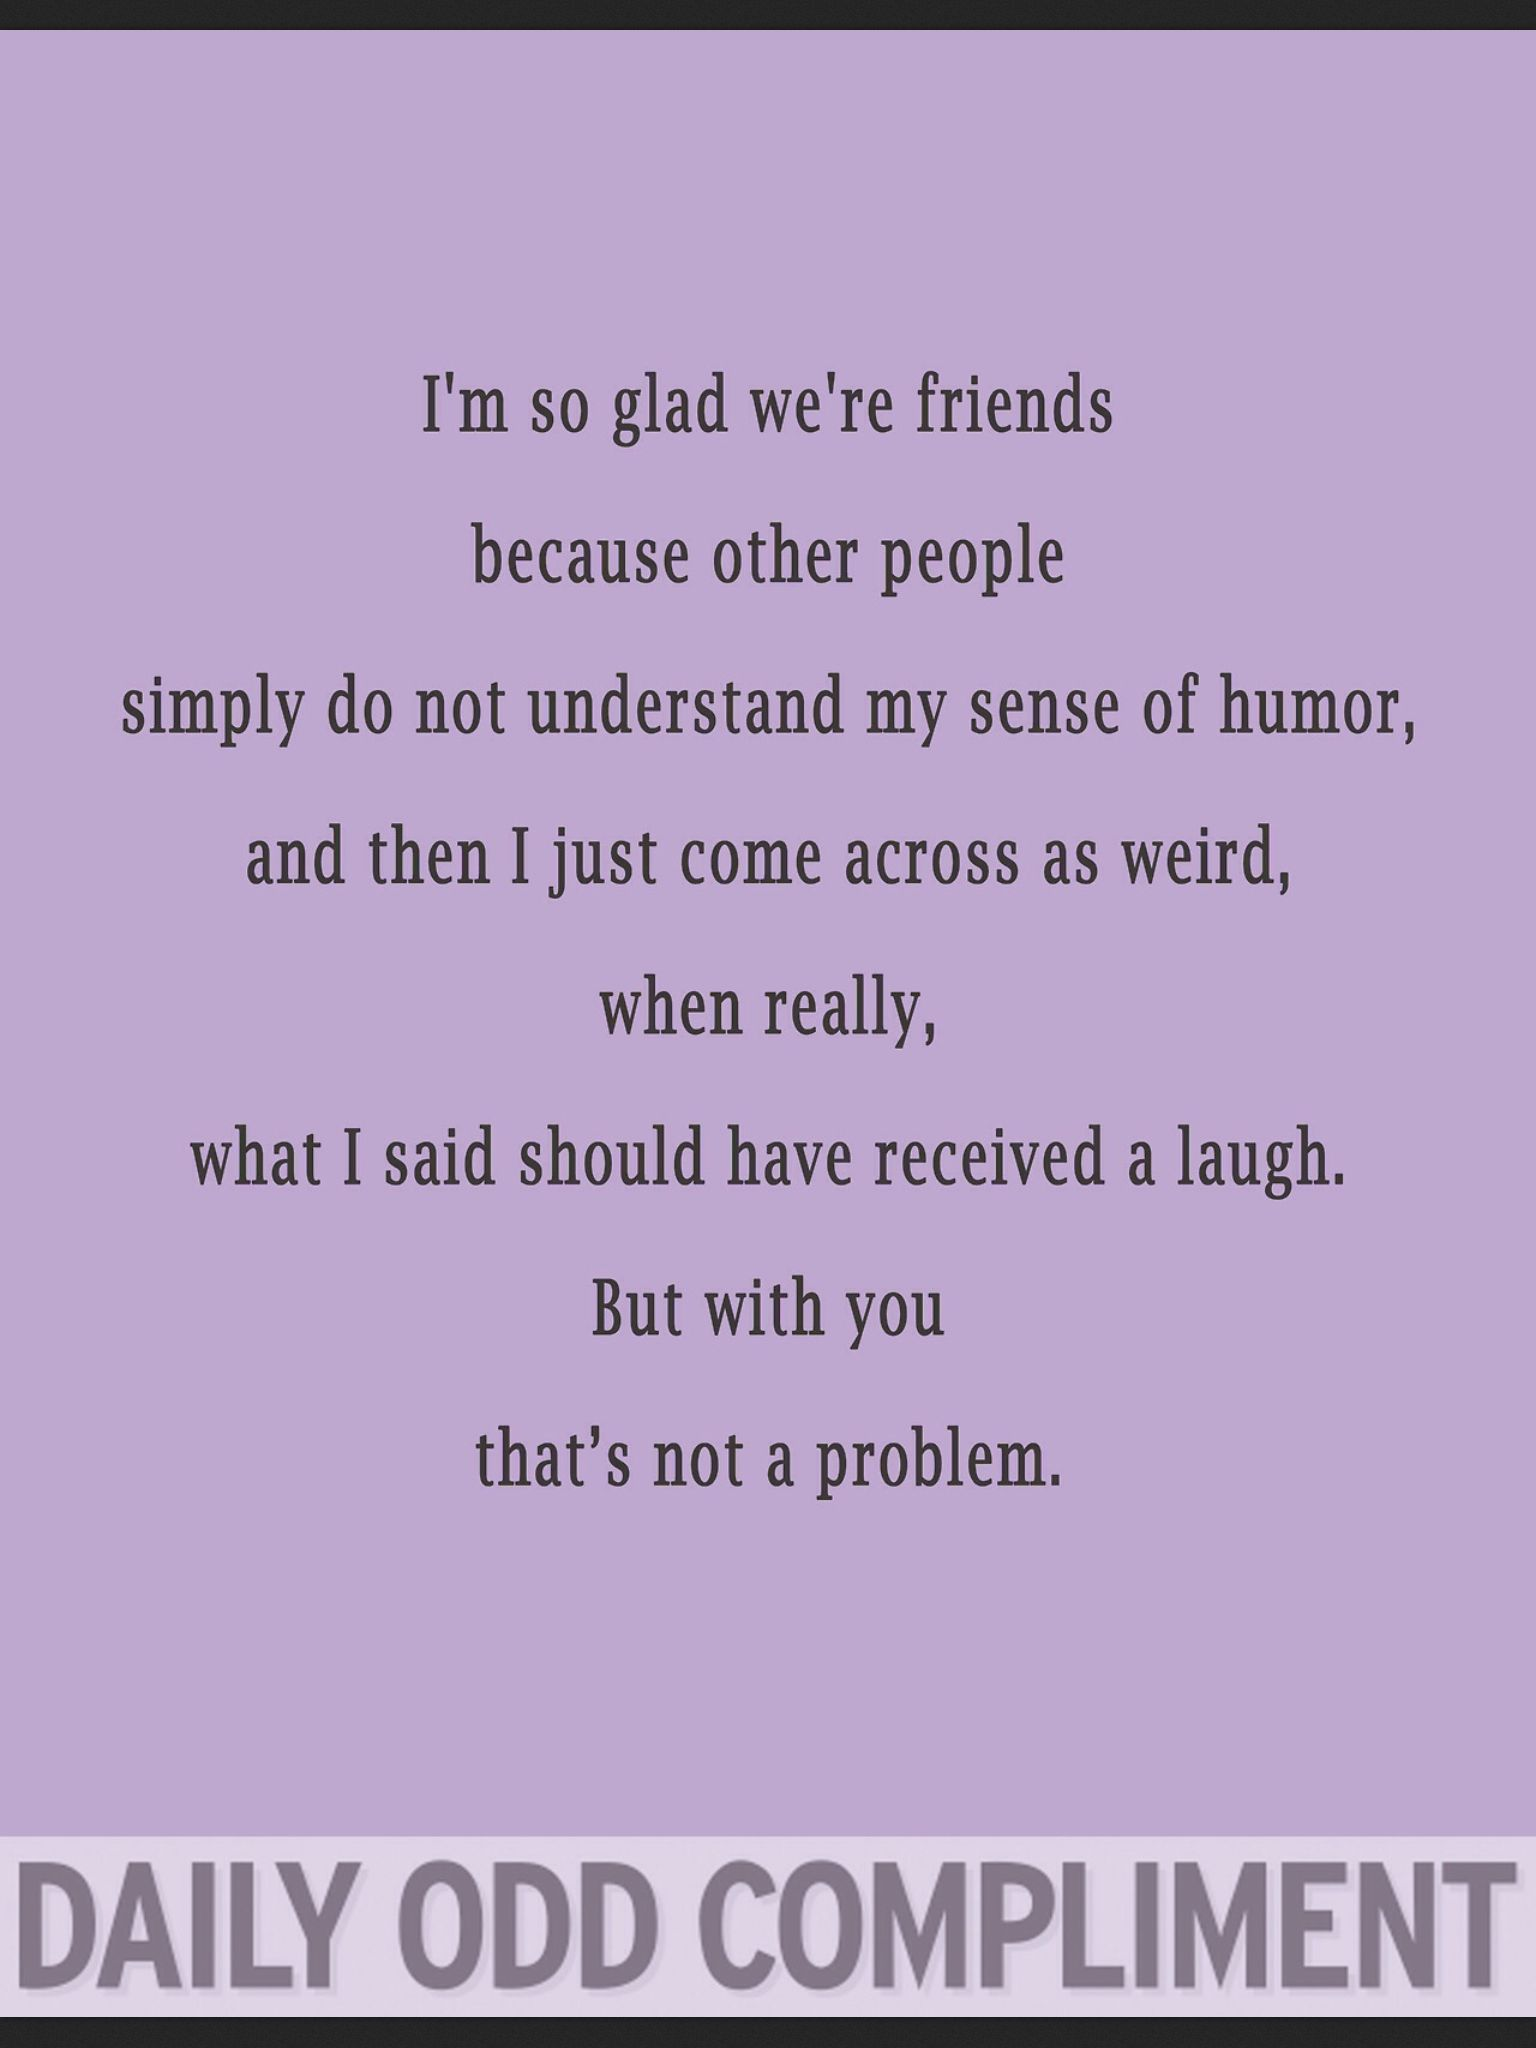 Caitlin Kelley | Quotes & Sayings | Odd compliments, Daily odd, Funny